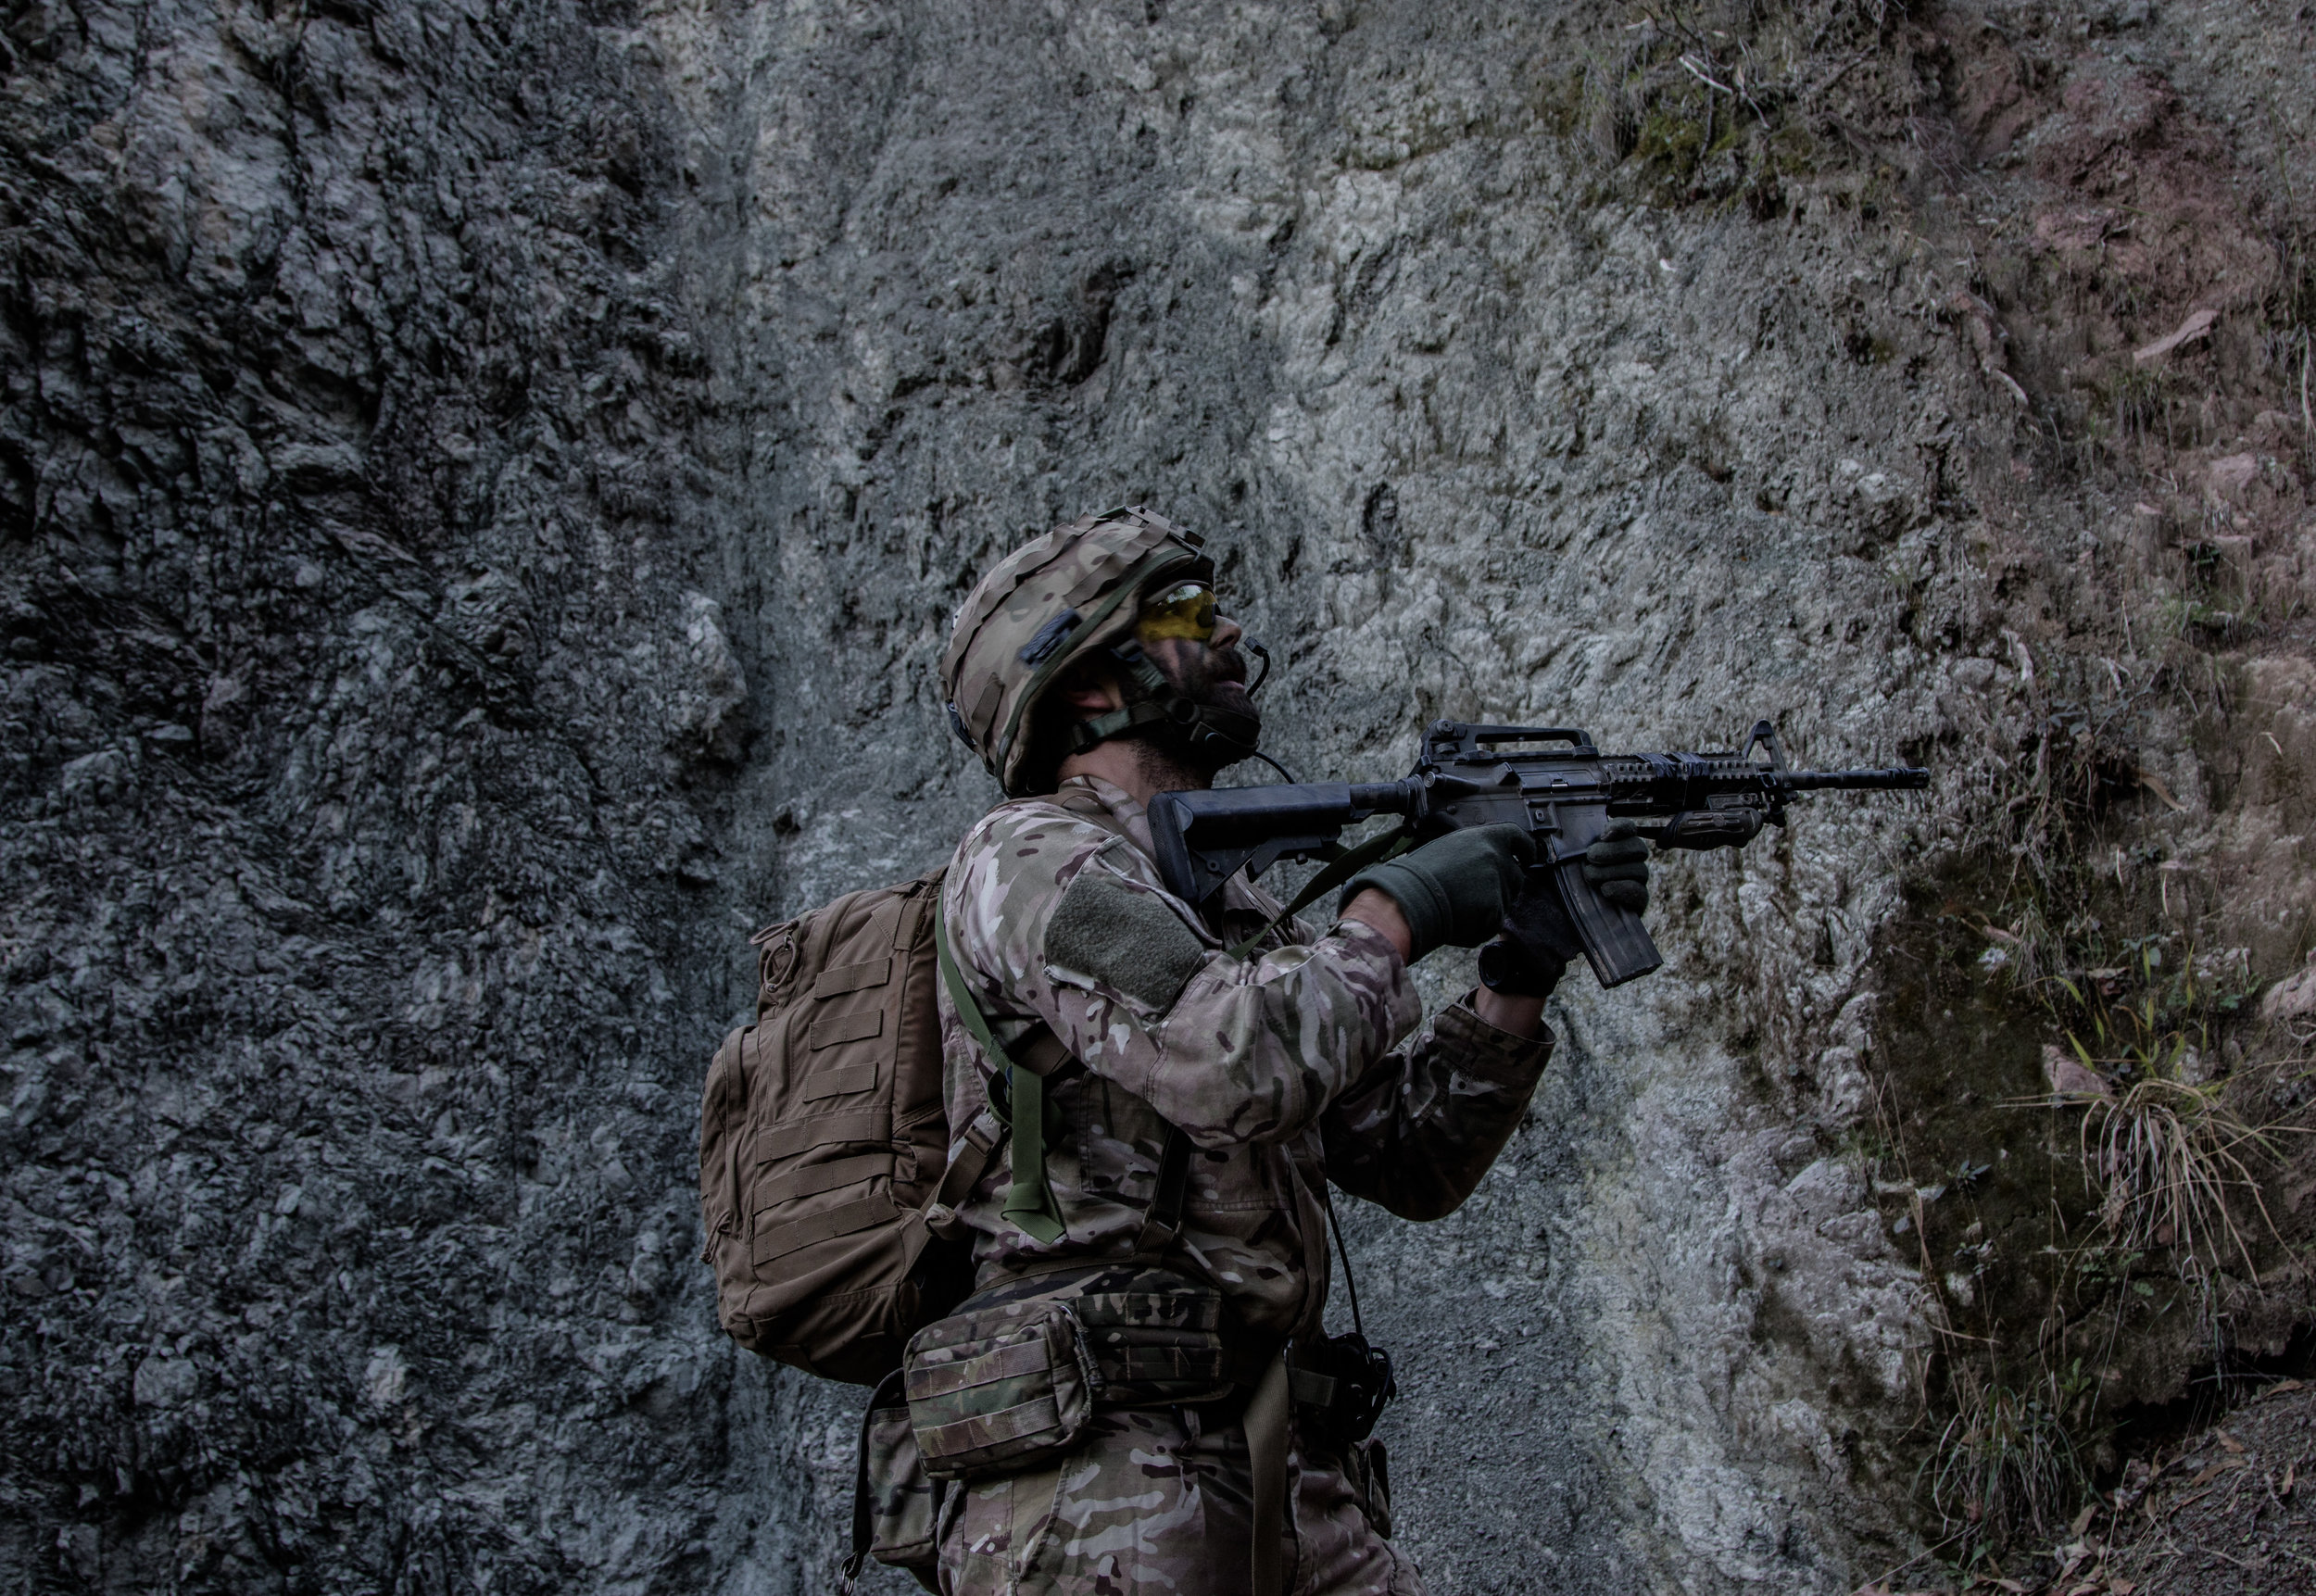 olly, one of our sergeants, amidst the ravine